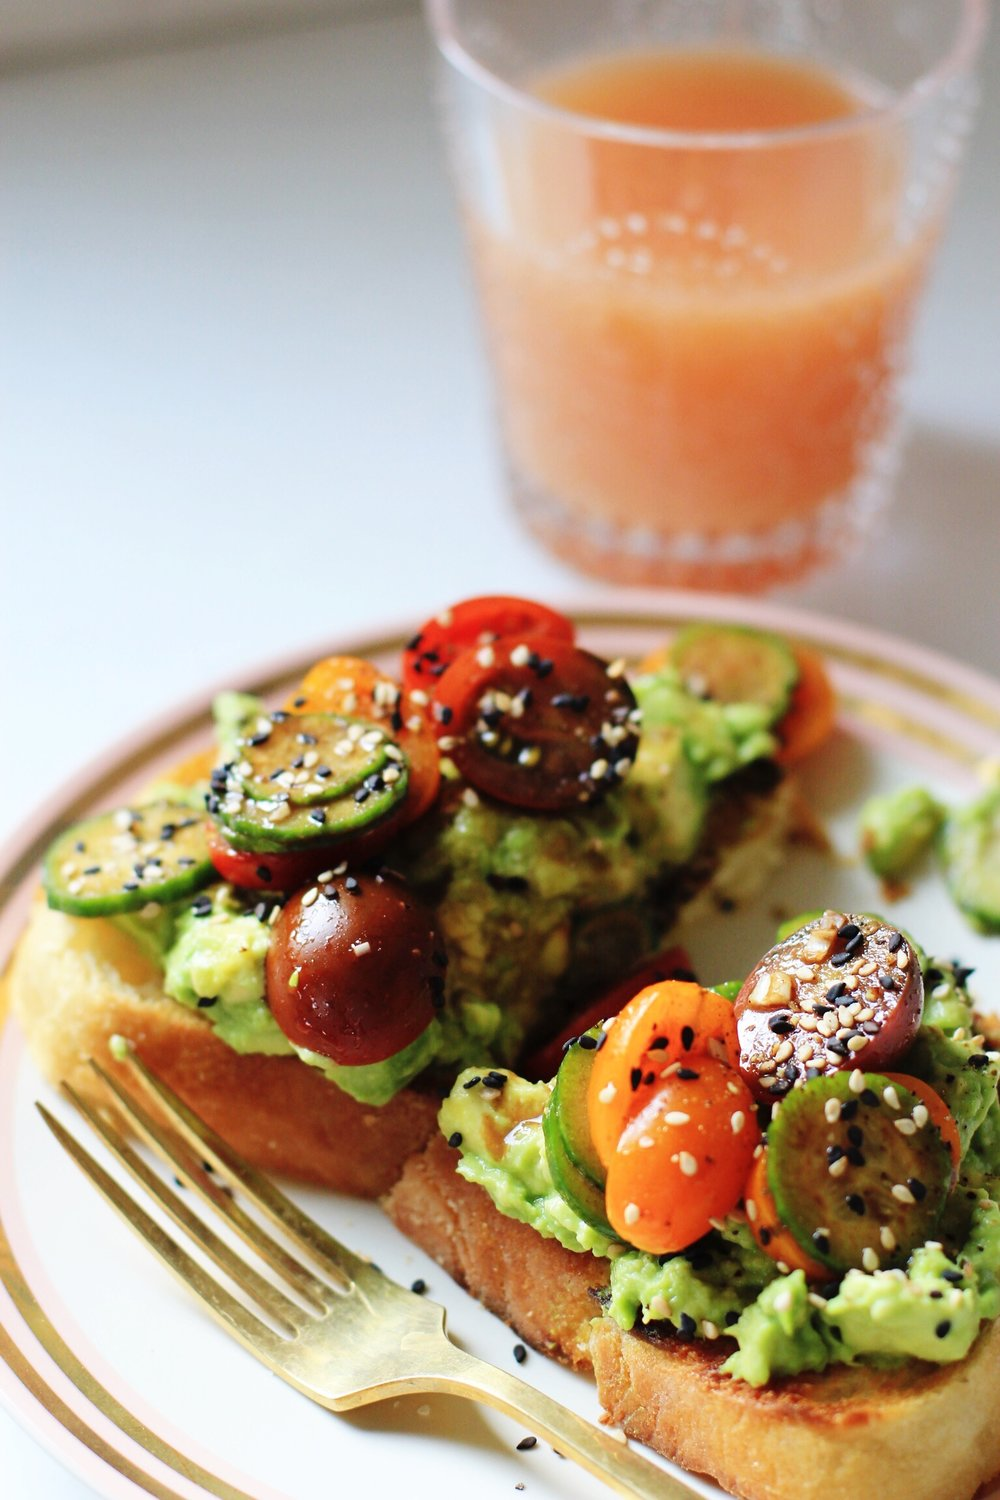 Avocado toast with balsamic tomatoes